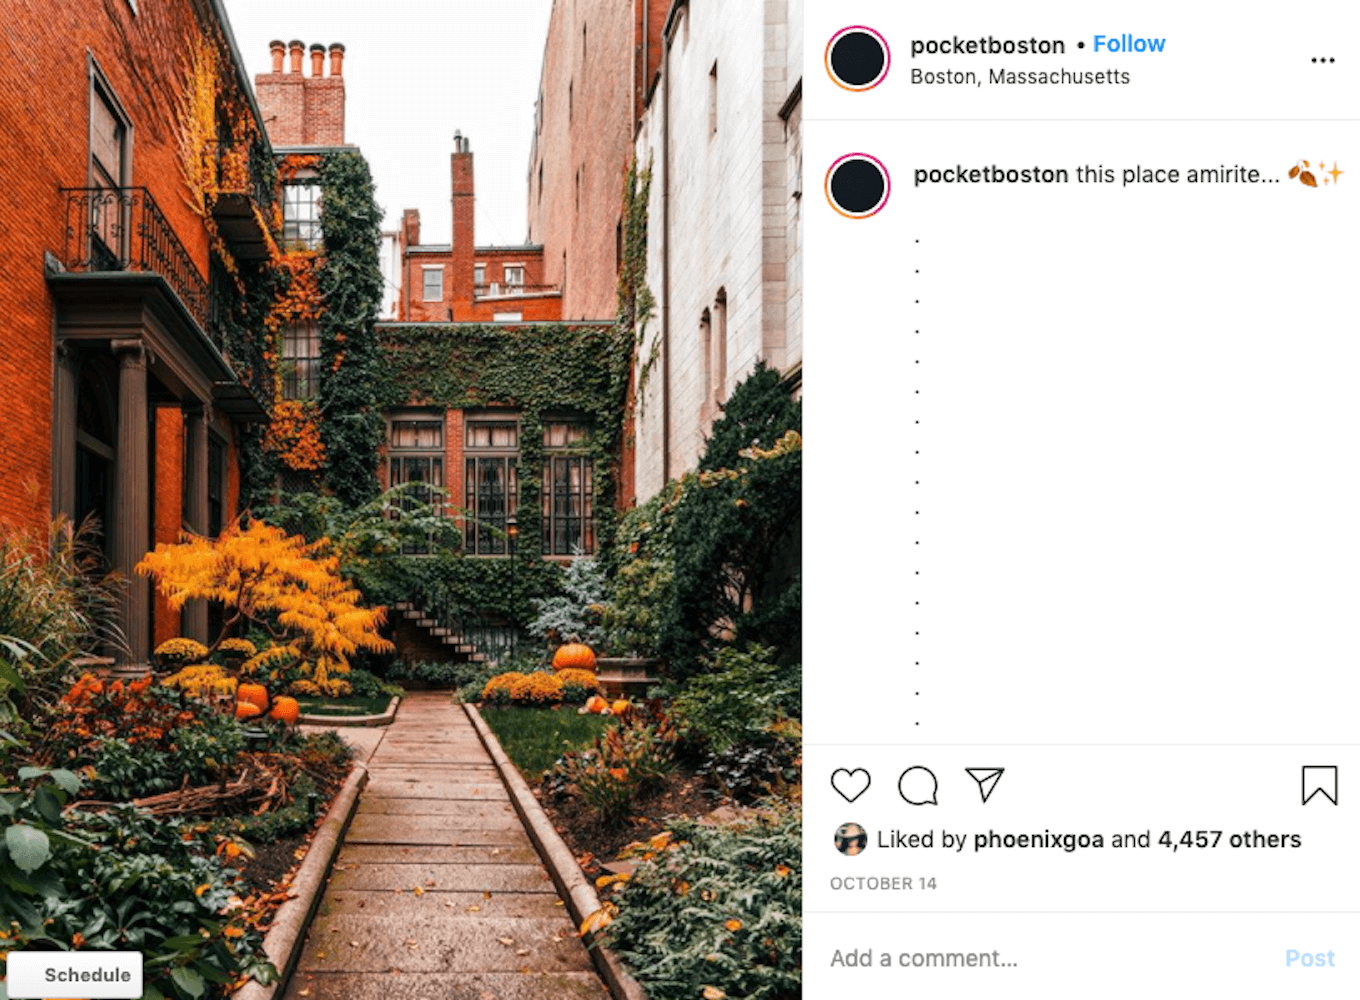 I colorful shot of brick buildings and an alleyway on Instagram.